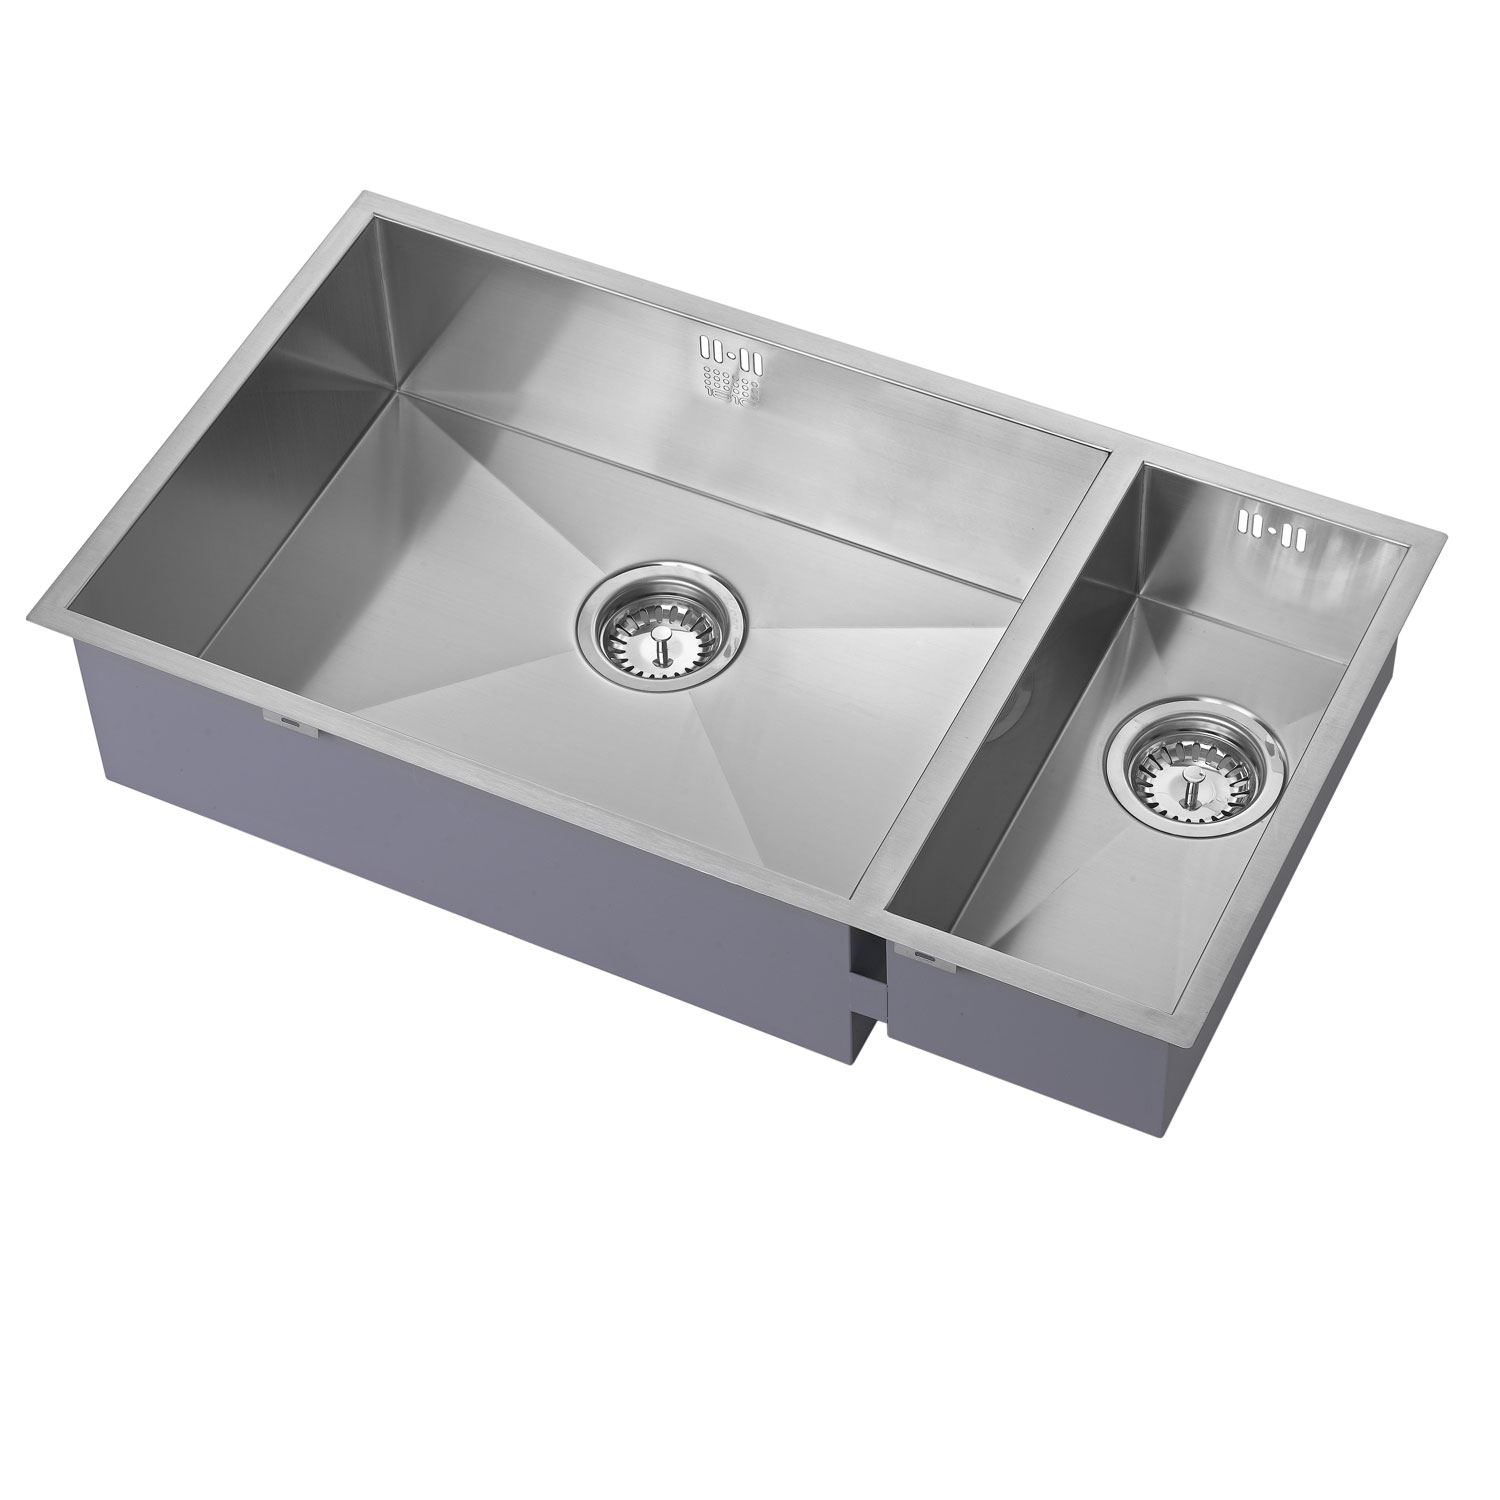 The 1810 Company Zenduo 550/180U 1.5 Bowl Kitchen Sink - Left Handed